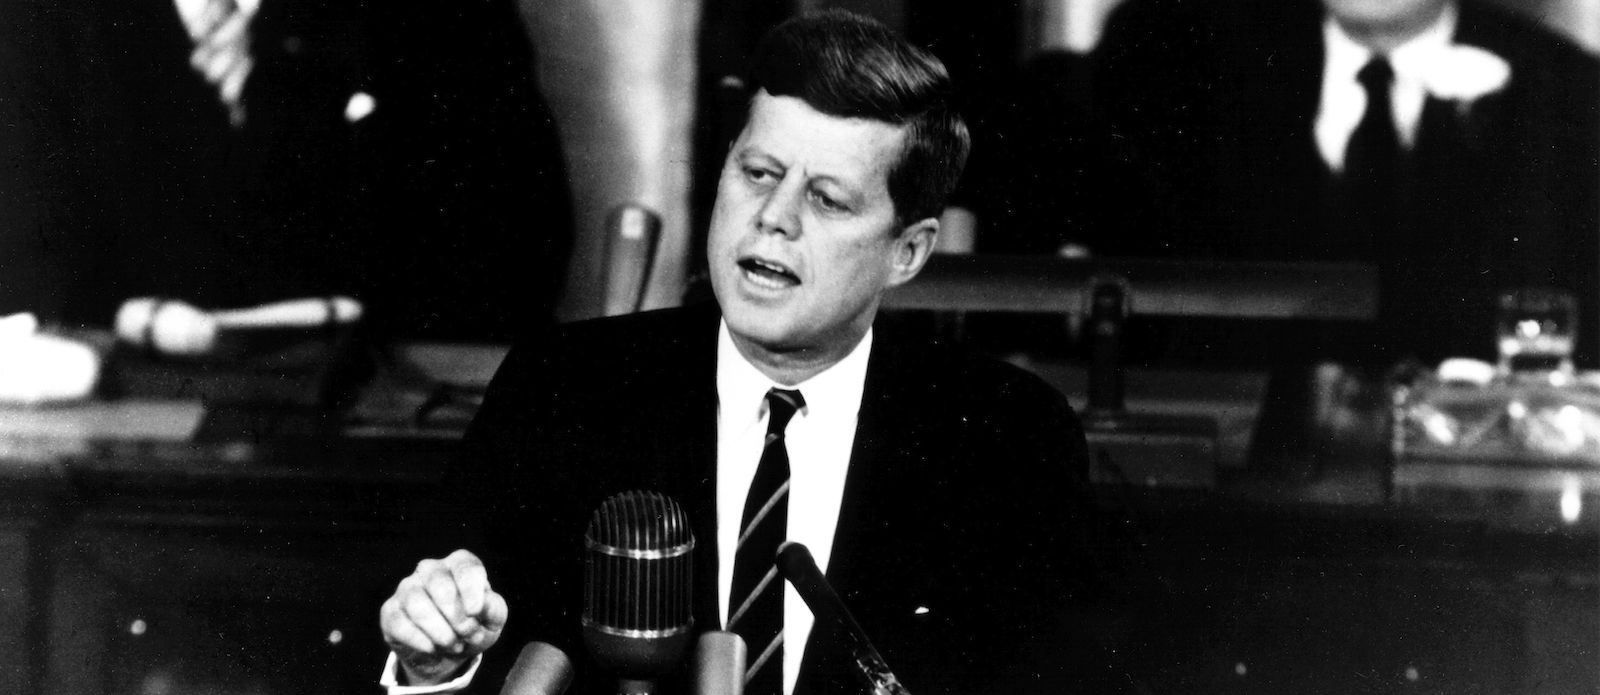 President Kennedy's famous declaration to Congress and the Nation on May 25, 1961